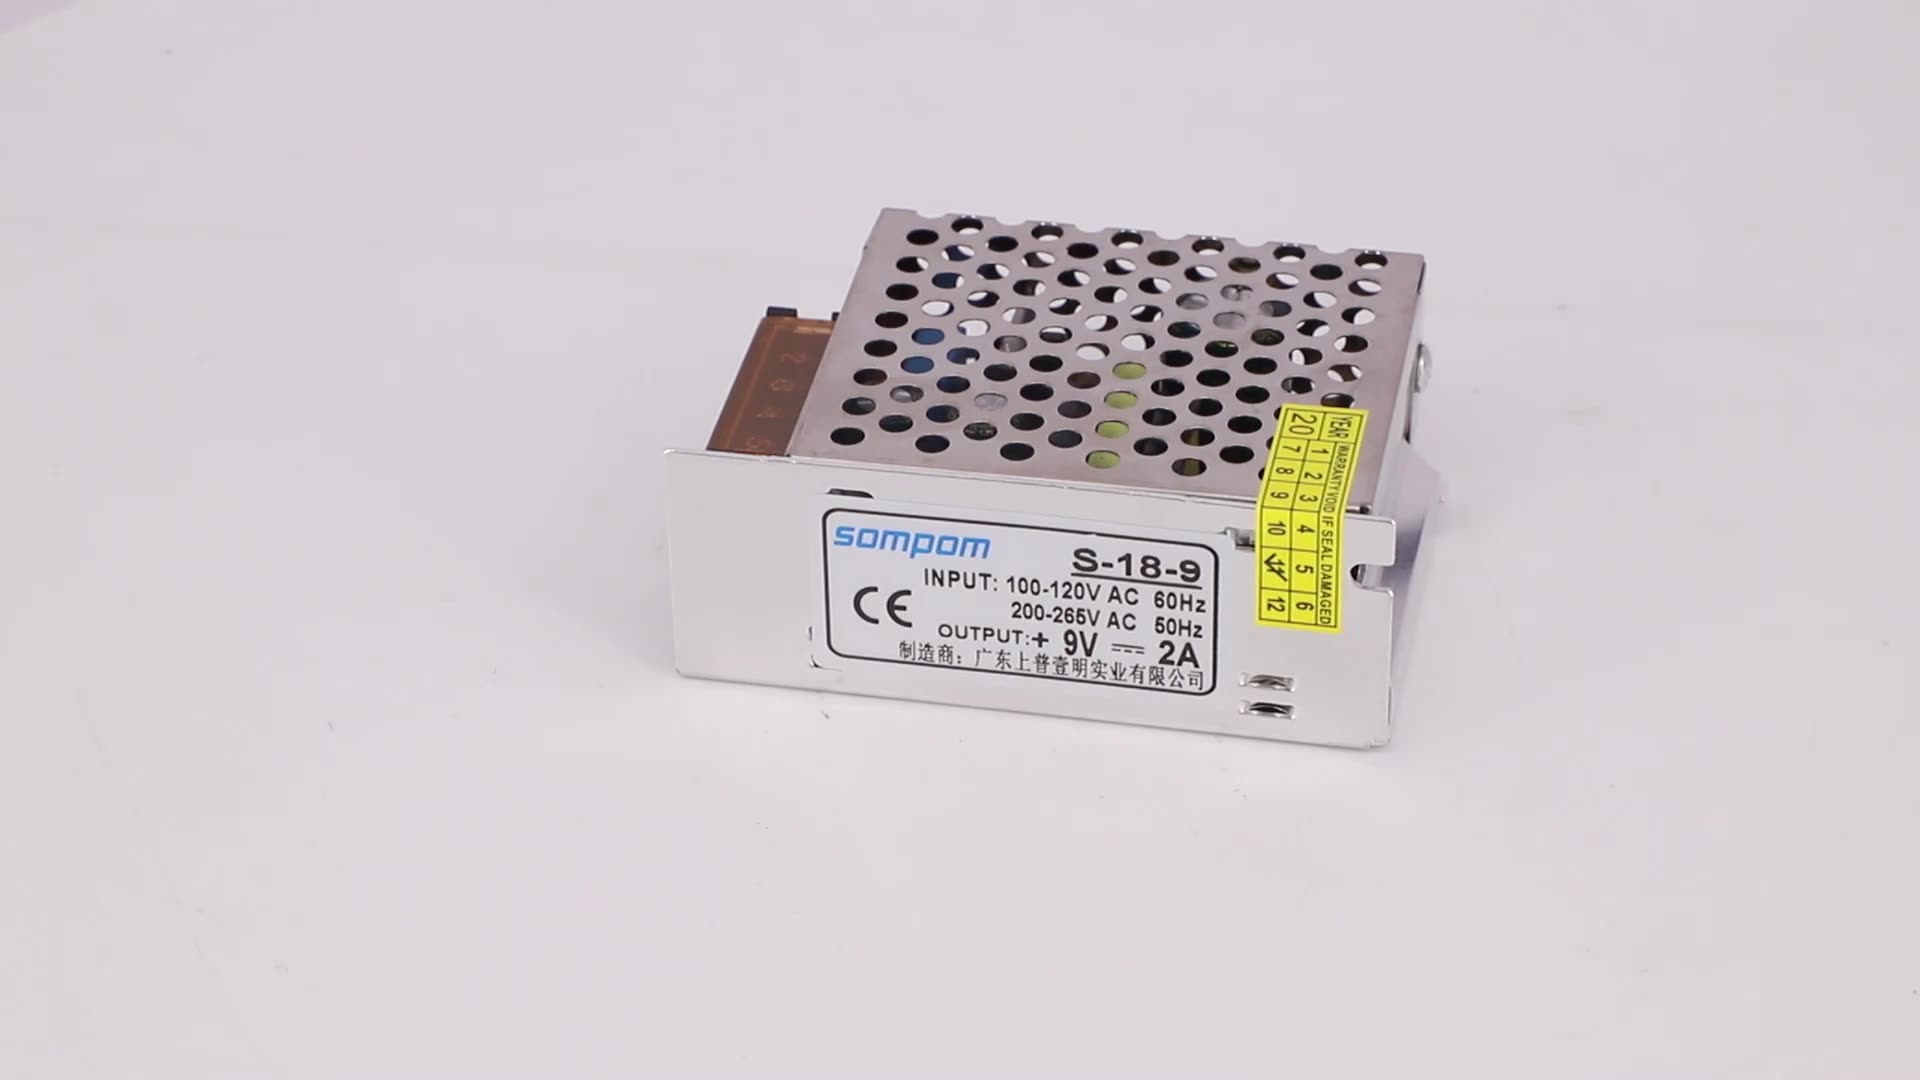 Sompom Power LED Driver Single Output 9V 2A 18W Switching Power Supply Manufacture Supplier